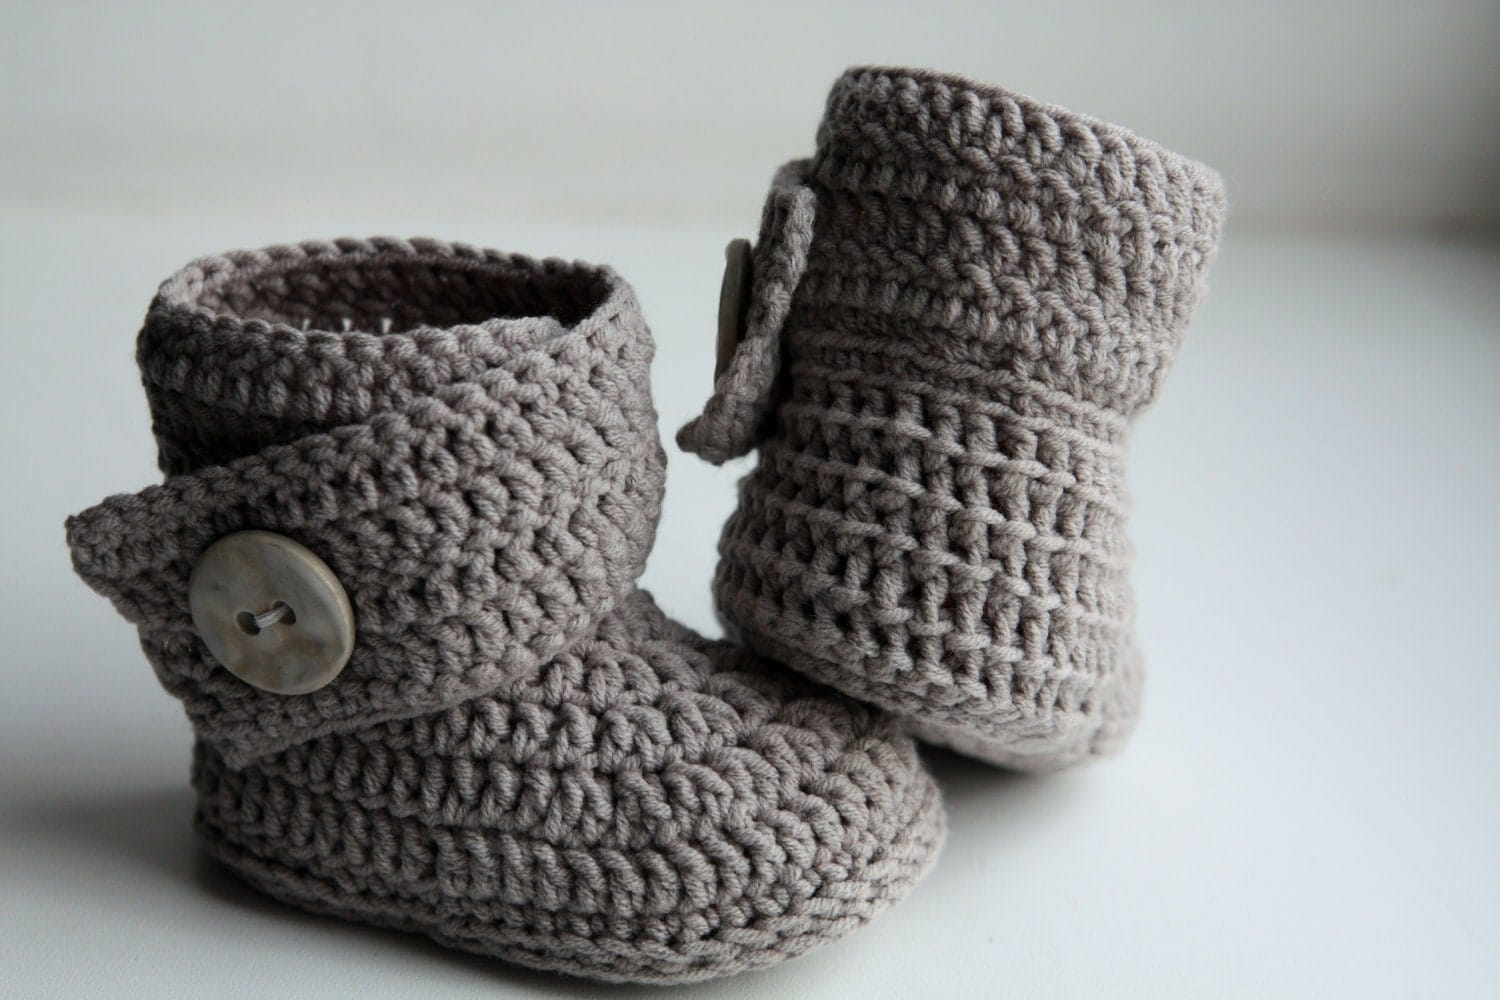 Crochet ugg boot pattern. PDF. This is a PATTERN for crocheted